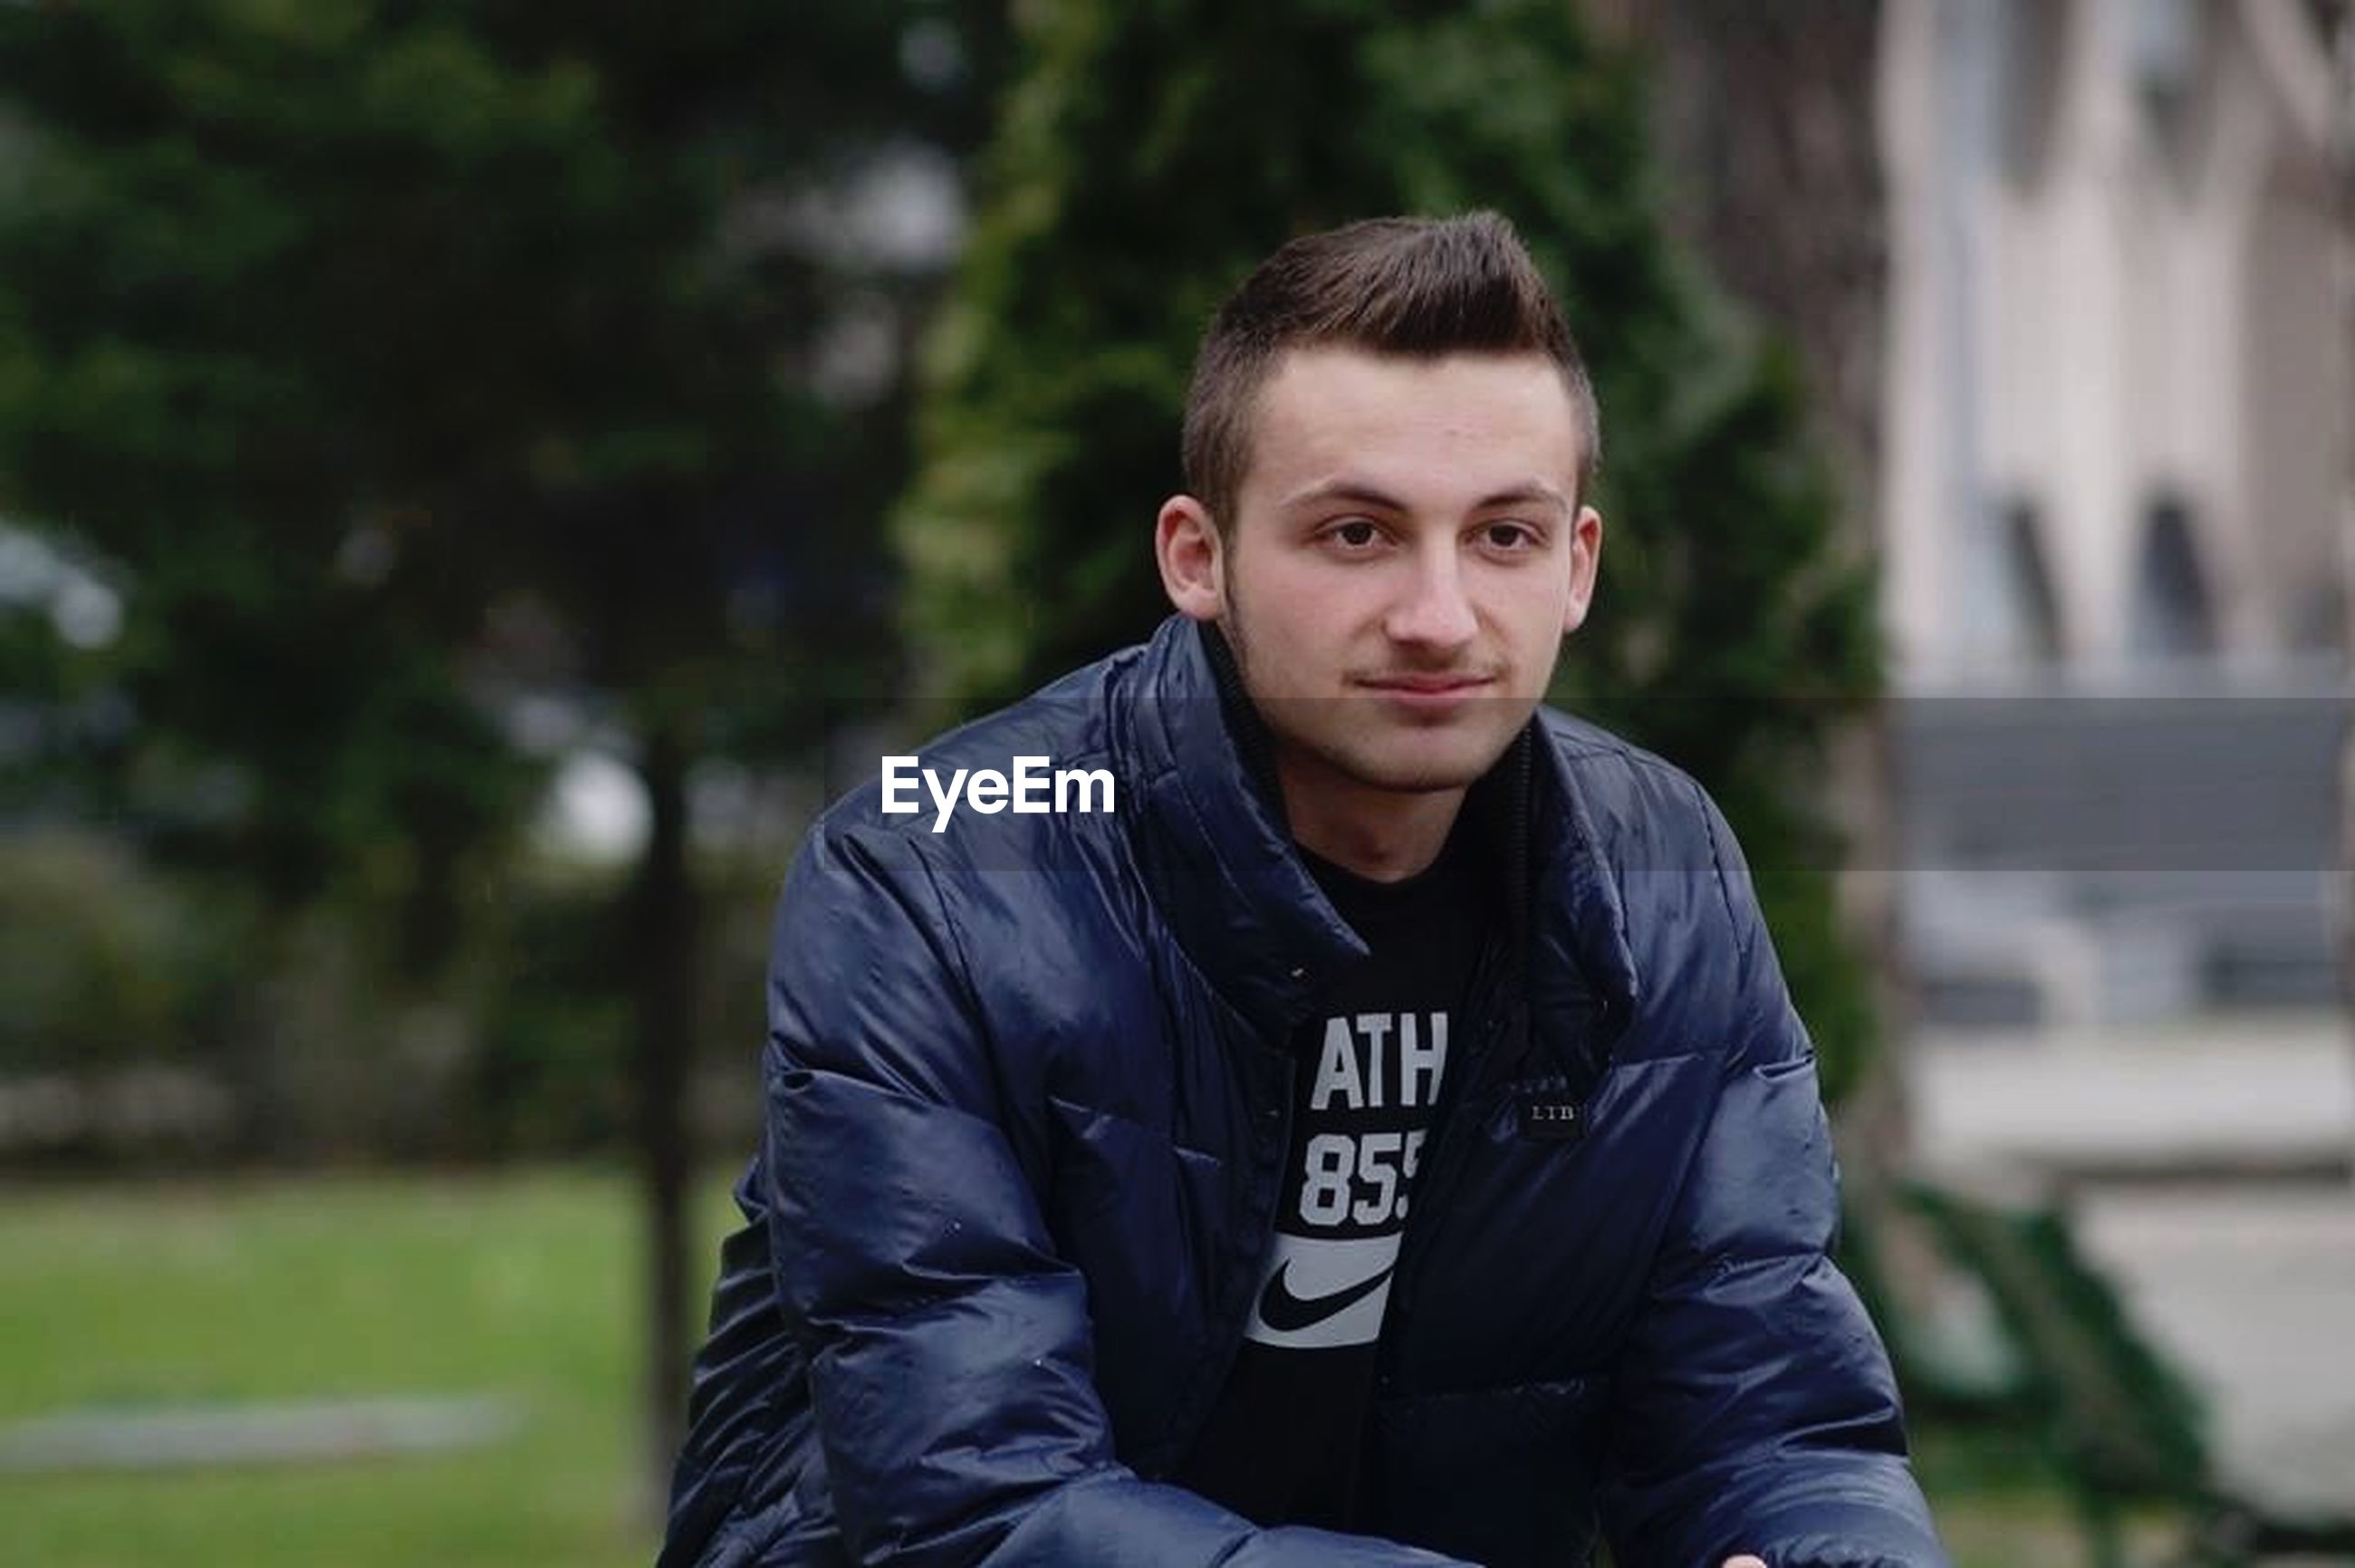 person, casual clothing, portrait, looking at camera, waist up, lifestyles, focus on foreground, front view, leisure activity, young men, smiling, standing, young adult, three quarter length, handsome, jacket, happiness